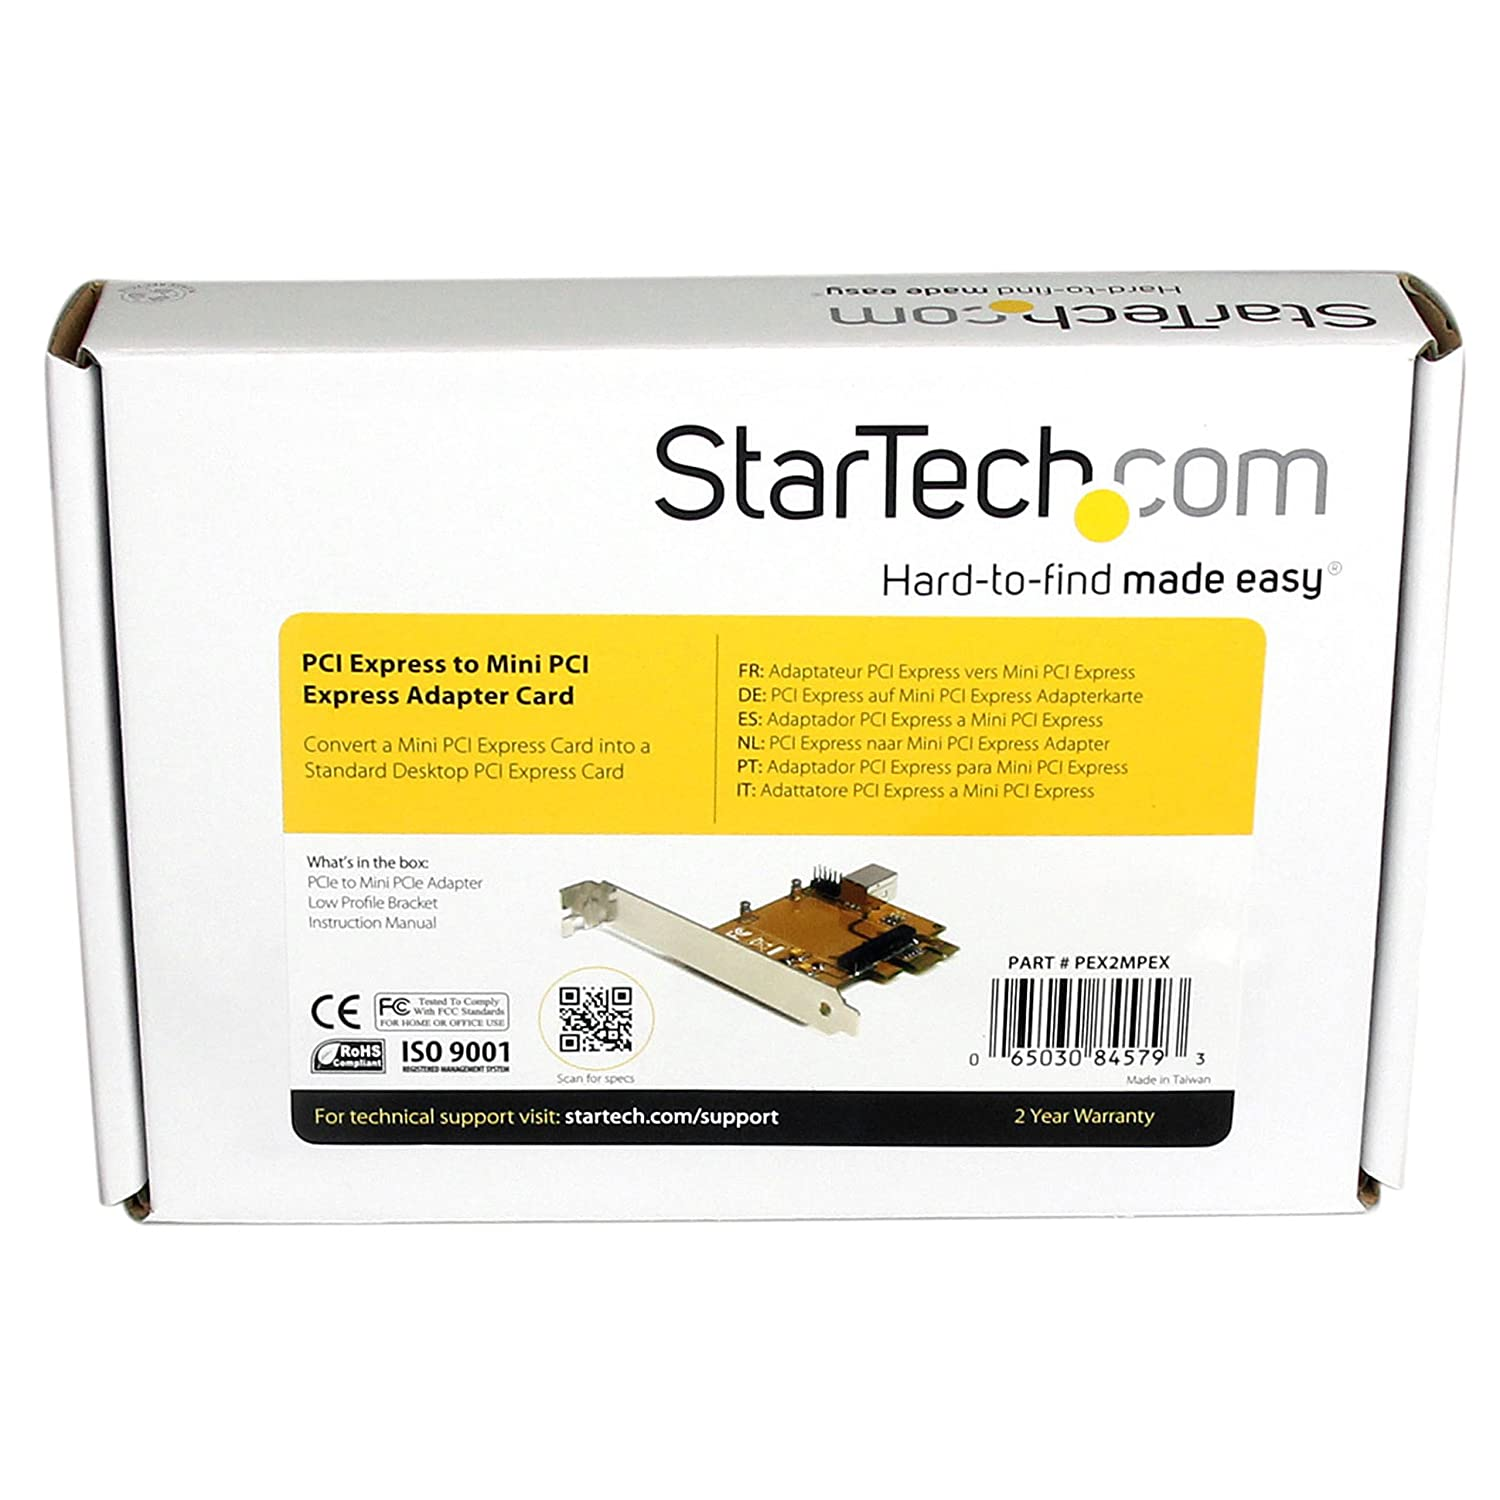 StarTech.com PCI Express to PCI Adapter Card PCIe to PCI Converter Adapter with Low Profile//Half Height Bracket